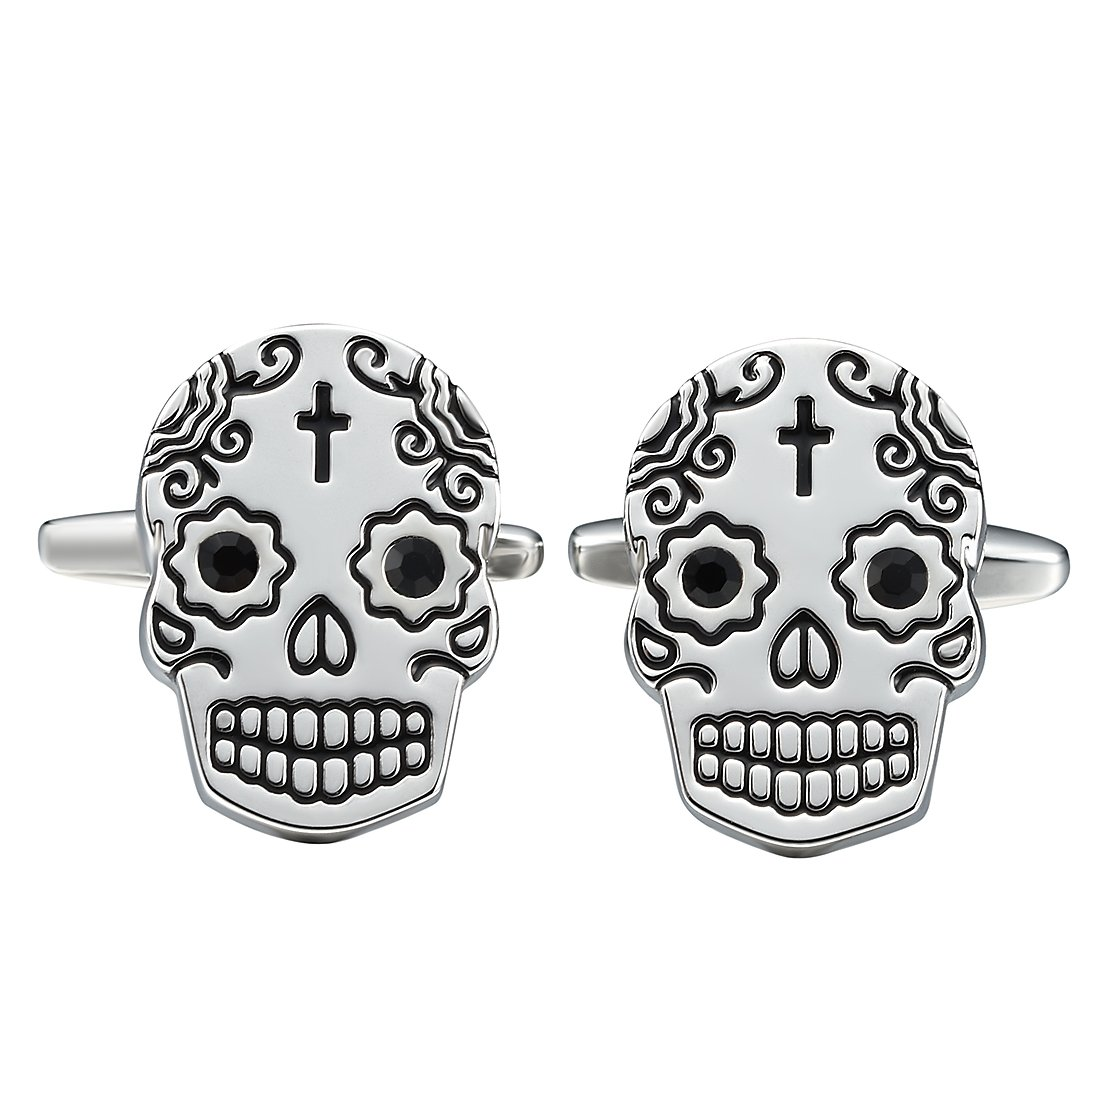 Three Keys Jewelry Mens Skull Cufflinks Black Vintage Fashion Style Cuff-Link for Business Wedding Shirt Dress GD-2964